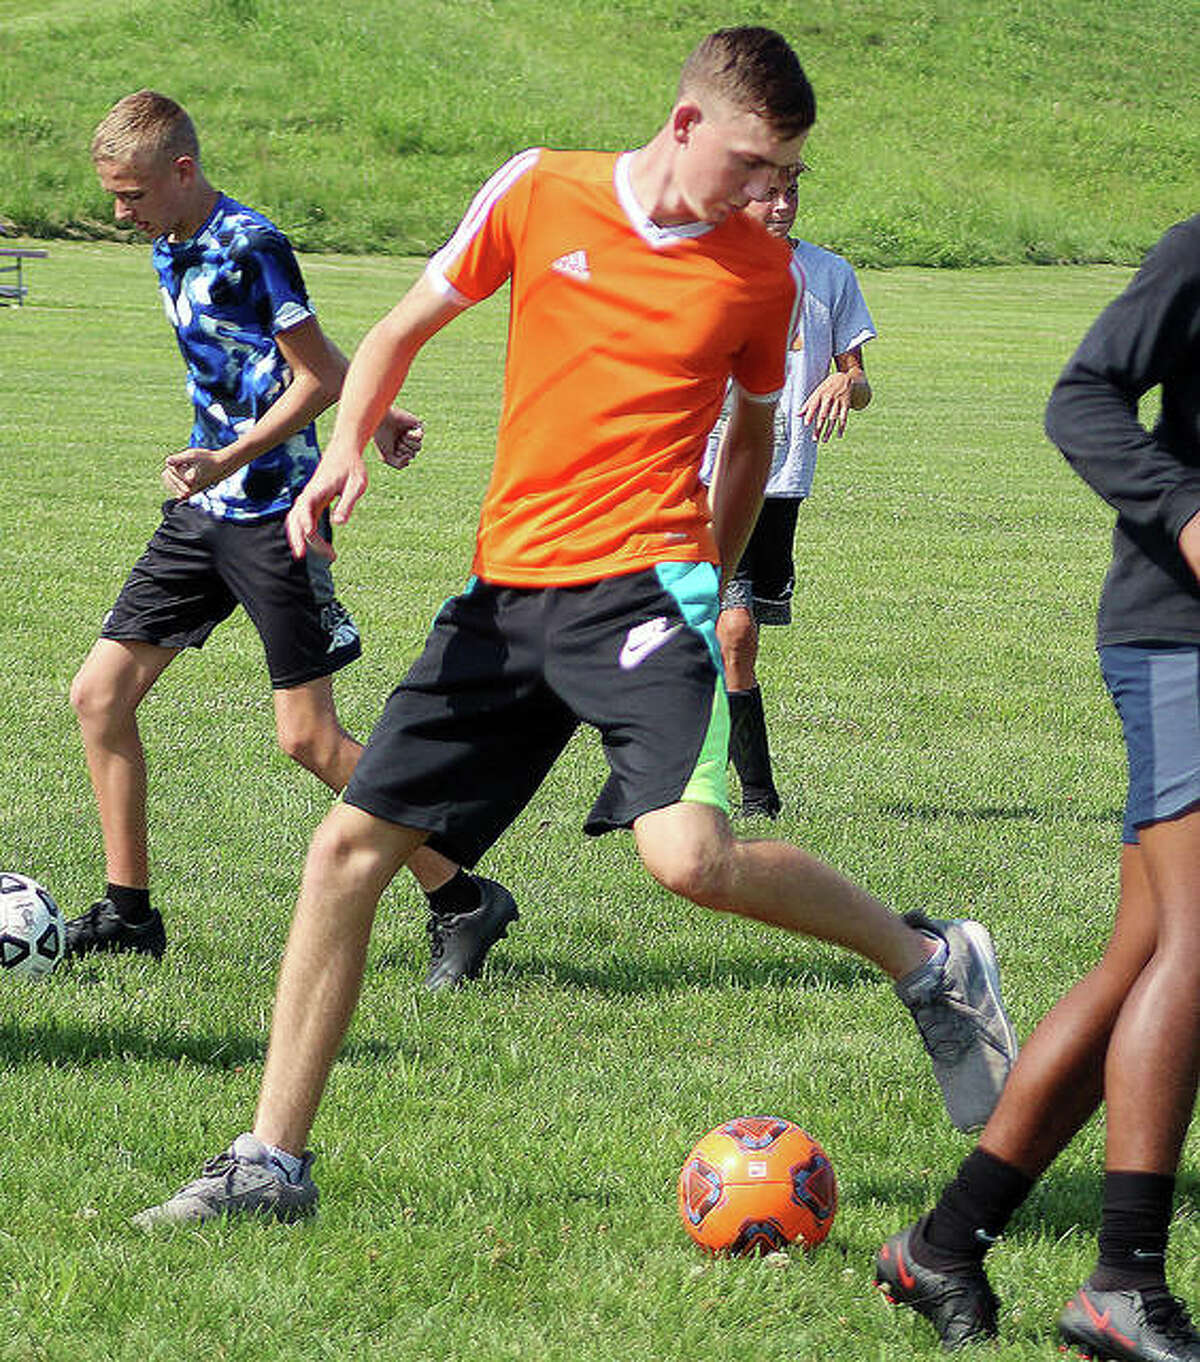 EA-WR senior Carson Reef controls the ball in a crowd during his team's practice Tuesday at Wood River Soccer Park.